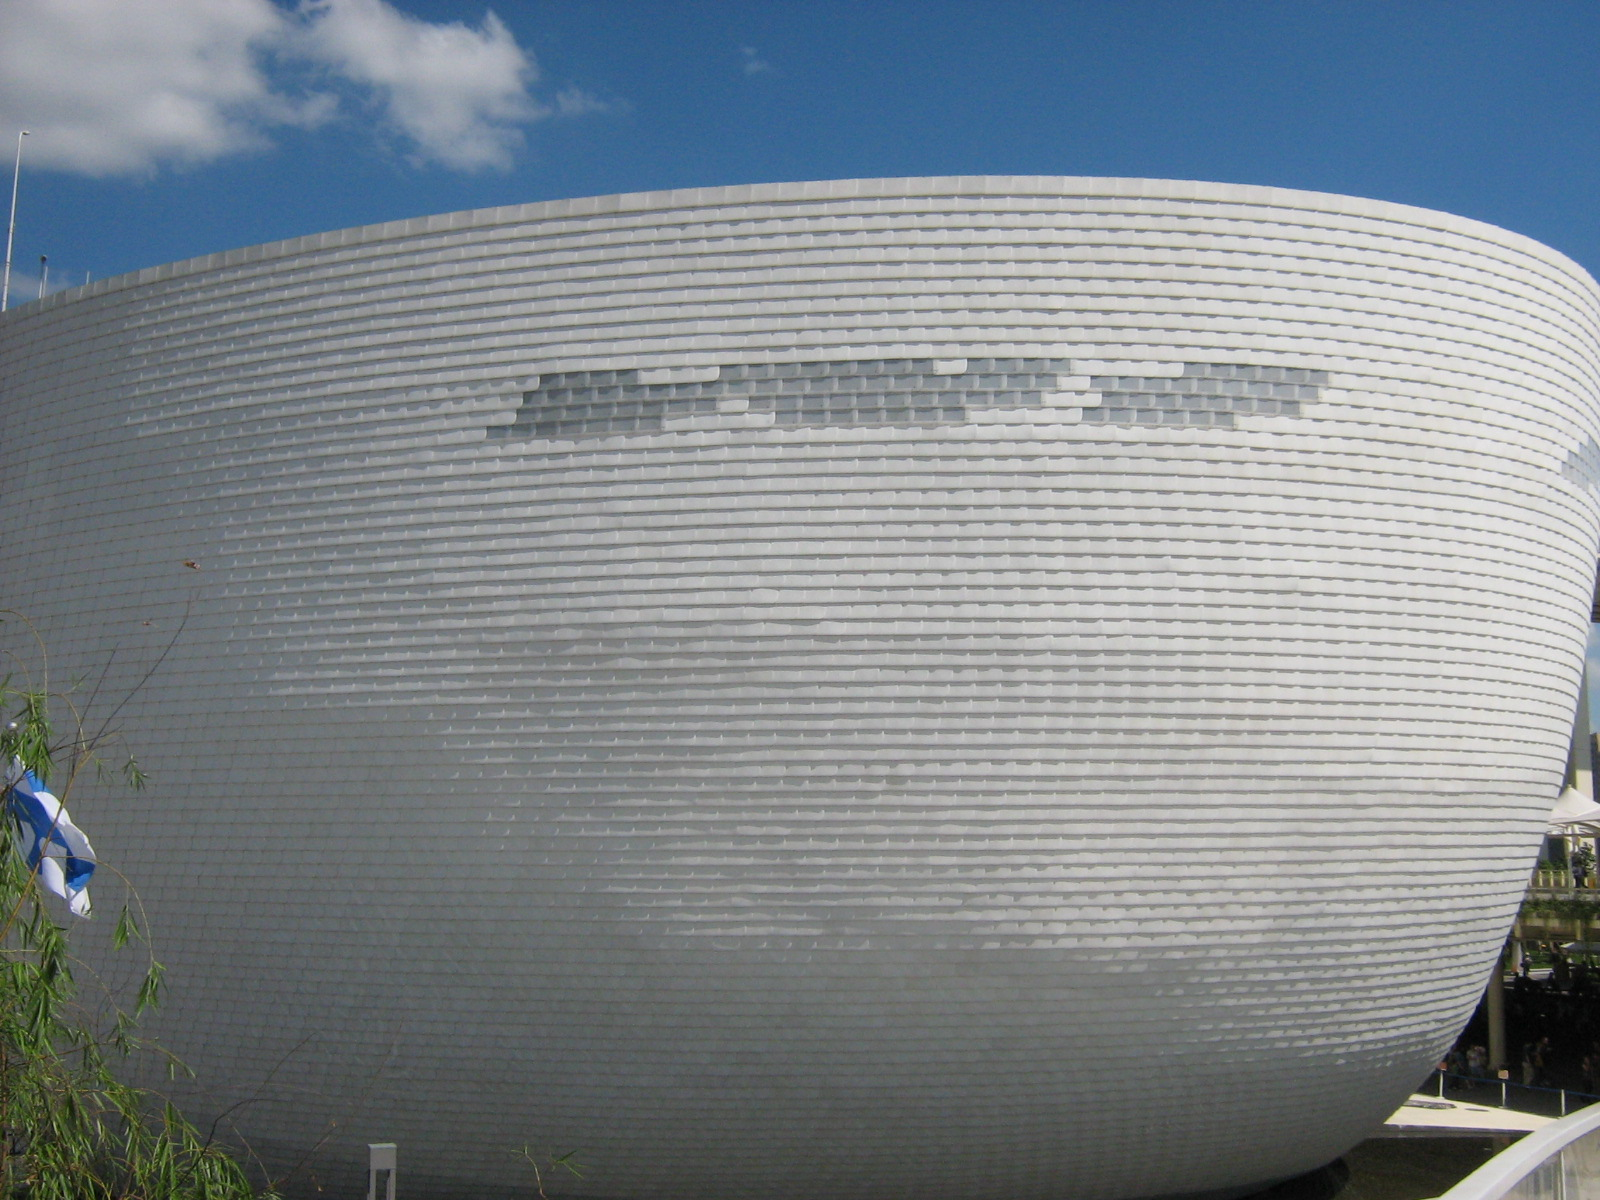 File:Finland Pavillion at 2010 Shanghai Expo.jpg - Wikimedia Commons